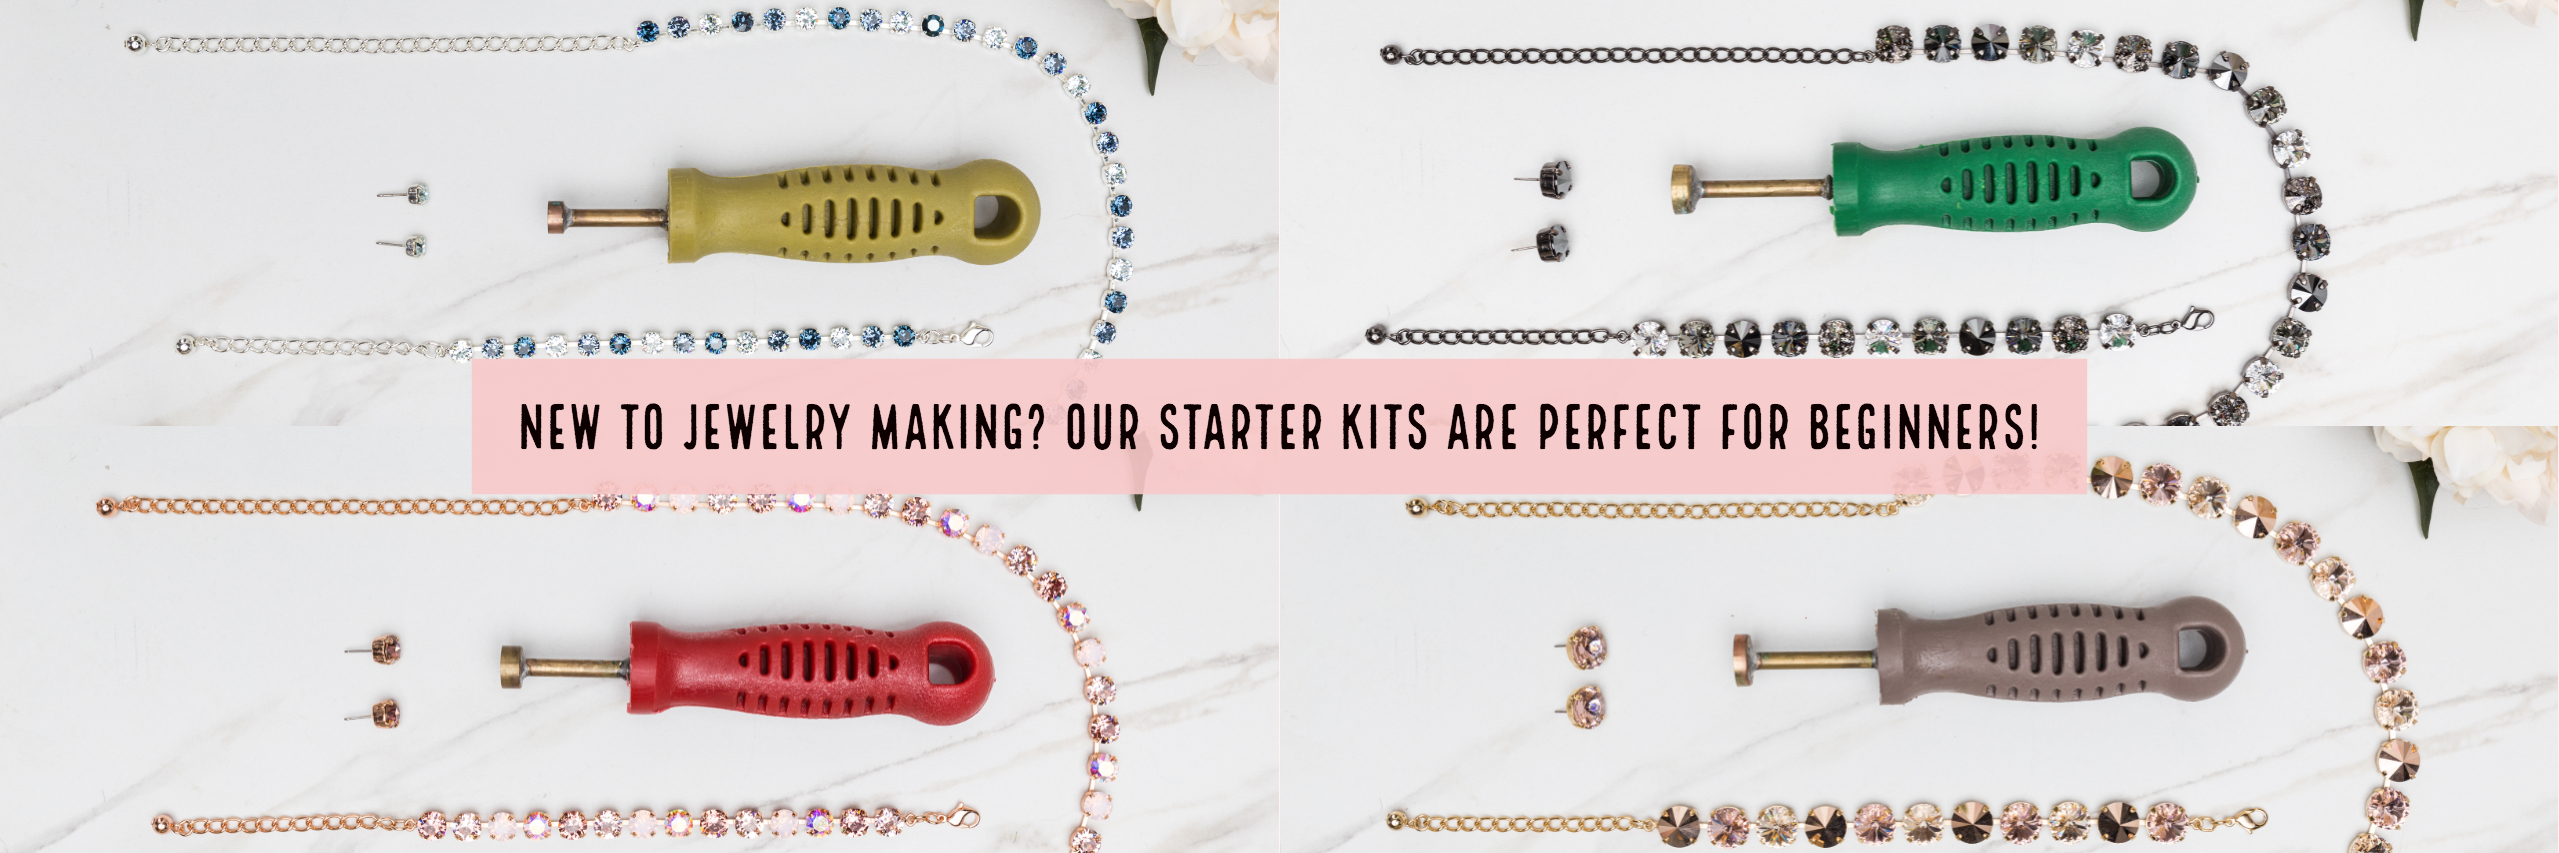 Our Starter Kits are Perfect for Beginners